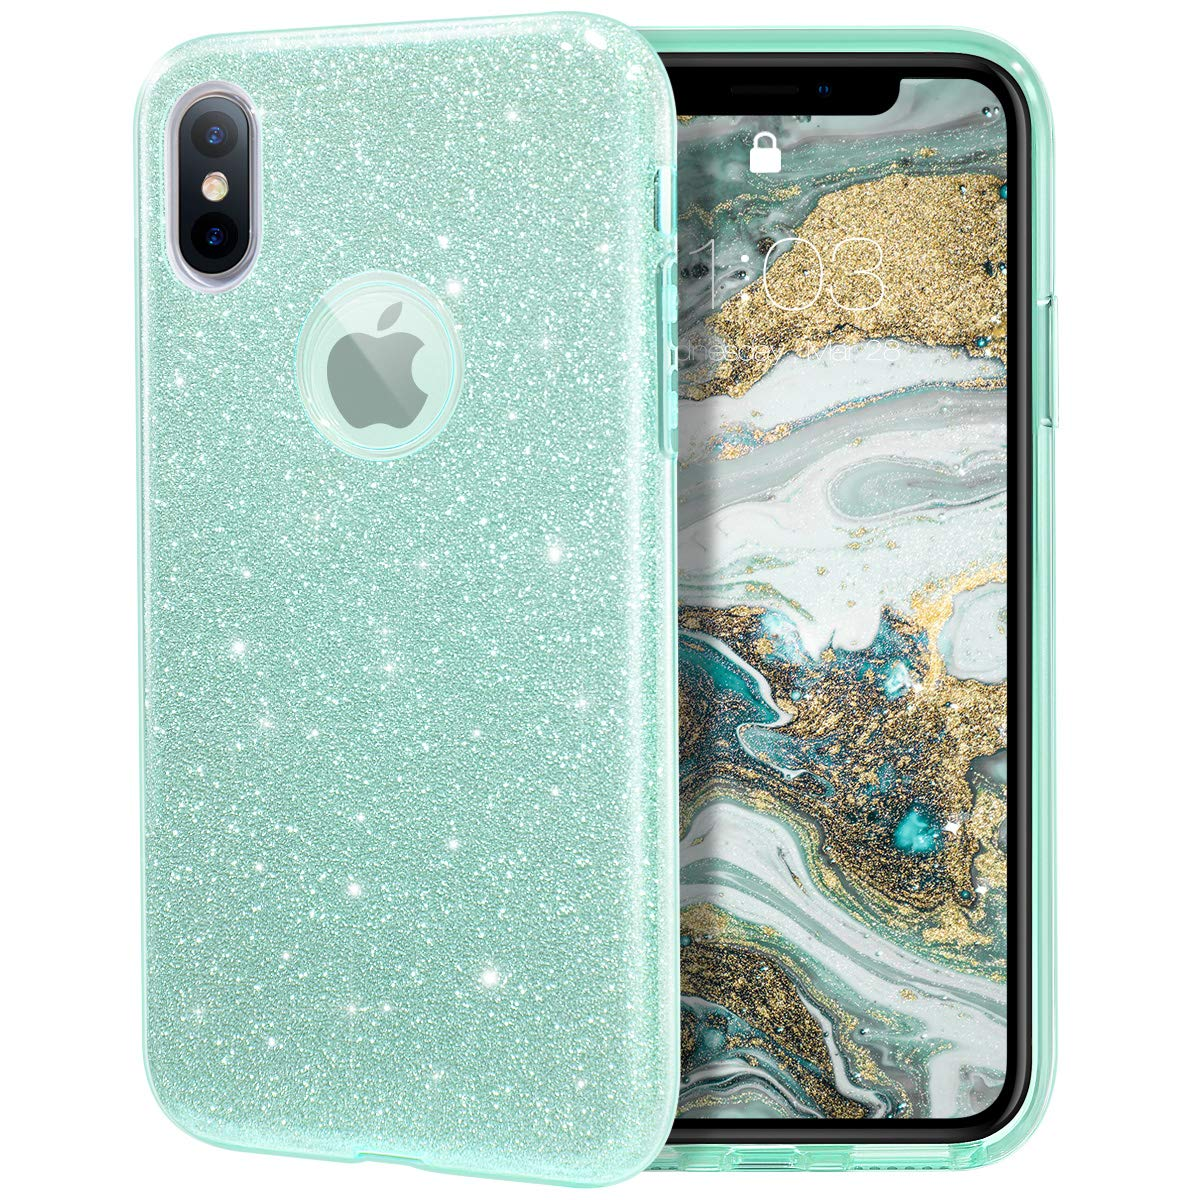 """MILPROX Glitter case for iPhone Xs iPhone X 5.8"""", Shiny Sparkle Bling, 3 Layer Hybrid Protective Soft Case - (Green Mint)"""